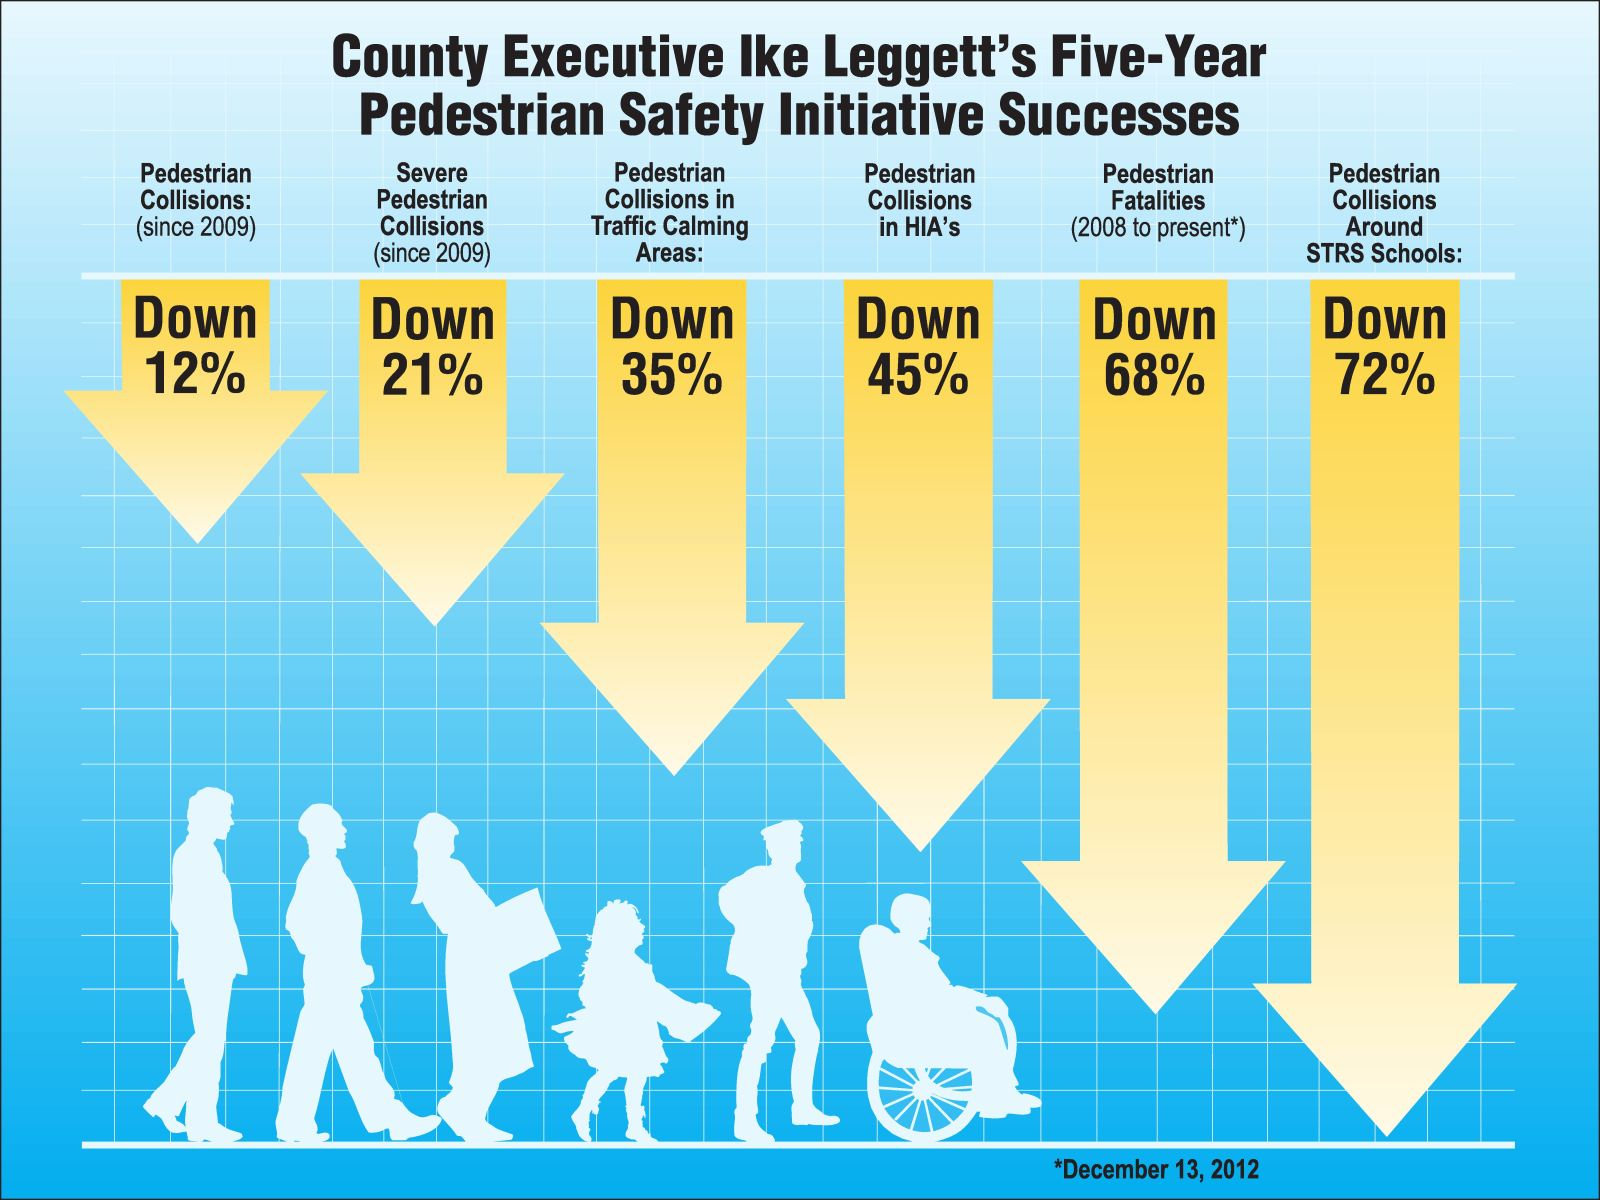 Graphic showing results of County Executive Leggett's Pedestrian Safety Initiative